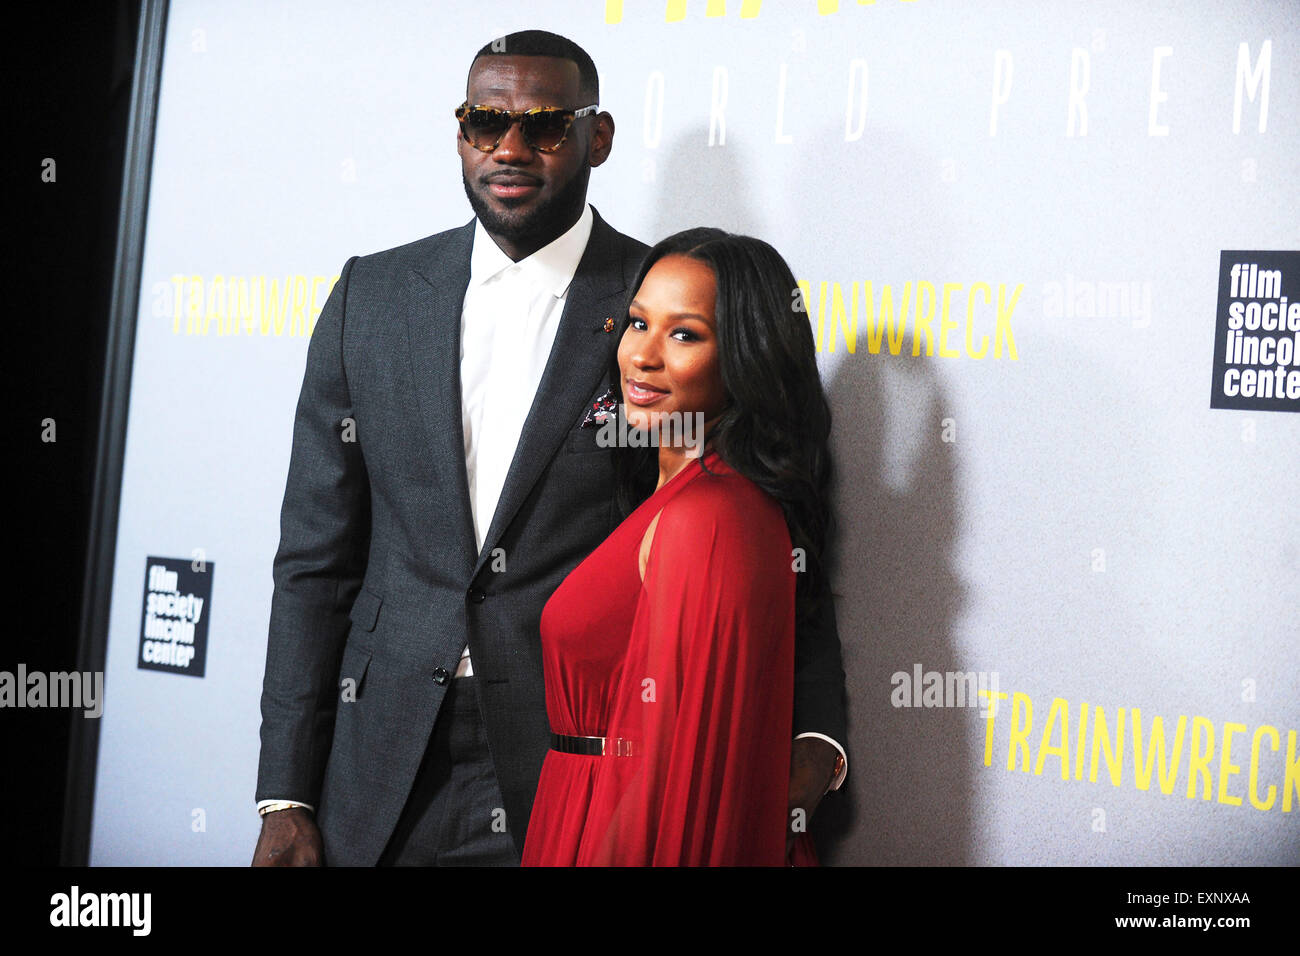 9f1deef145e4 LeBron James and Savannah Brinson attending the  Trainwreck  premiere at  Alice Tully Hall on July 14